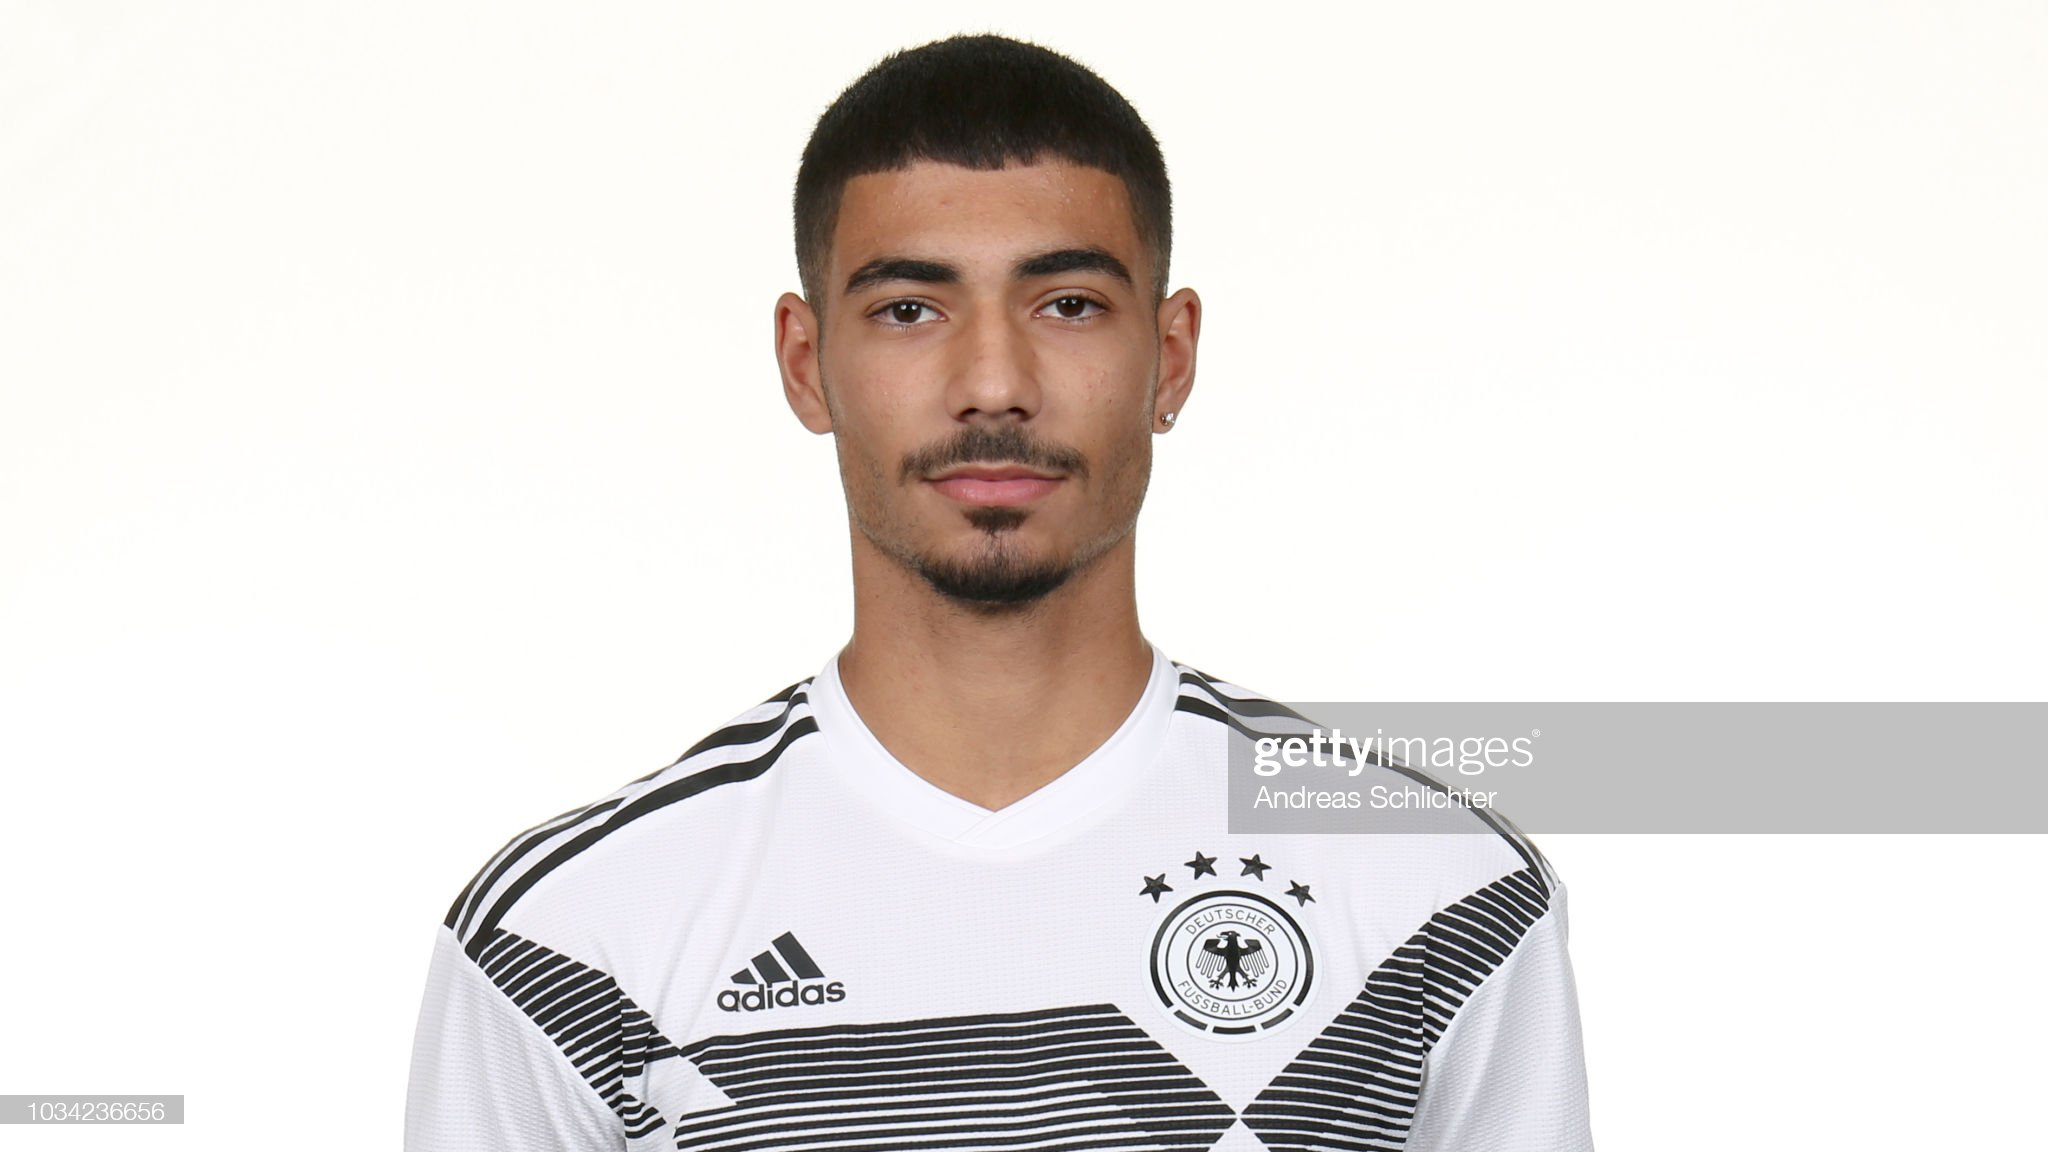 https://media.gettyimages.com/photos/ekin-celebi-poses-during-the-u19-germany-team-presentation-on-5-2018-picture-id1034236656?s=2048x2048